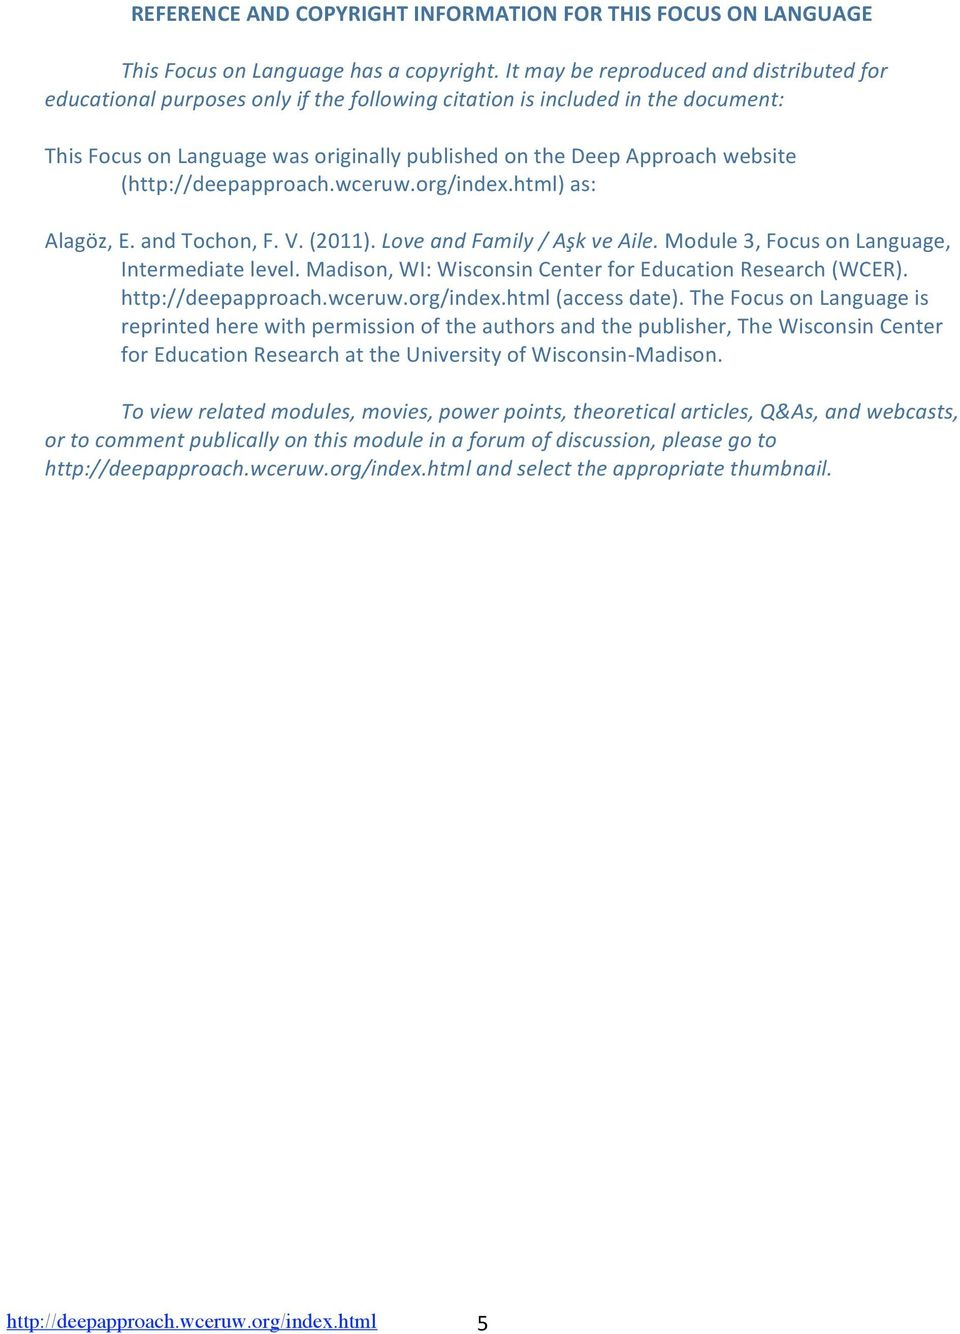 org/index.html)as: Alagöz,E.andTochon,F.V.(2011).LoveandFamily/AşkveAile.Module3,FocusonLanguage, Intermediatelevel.Madison,WI:WisconsinCenterforEducationResearch(WCER). http://deepapproach.wceruw.